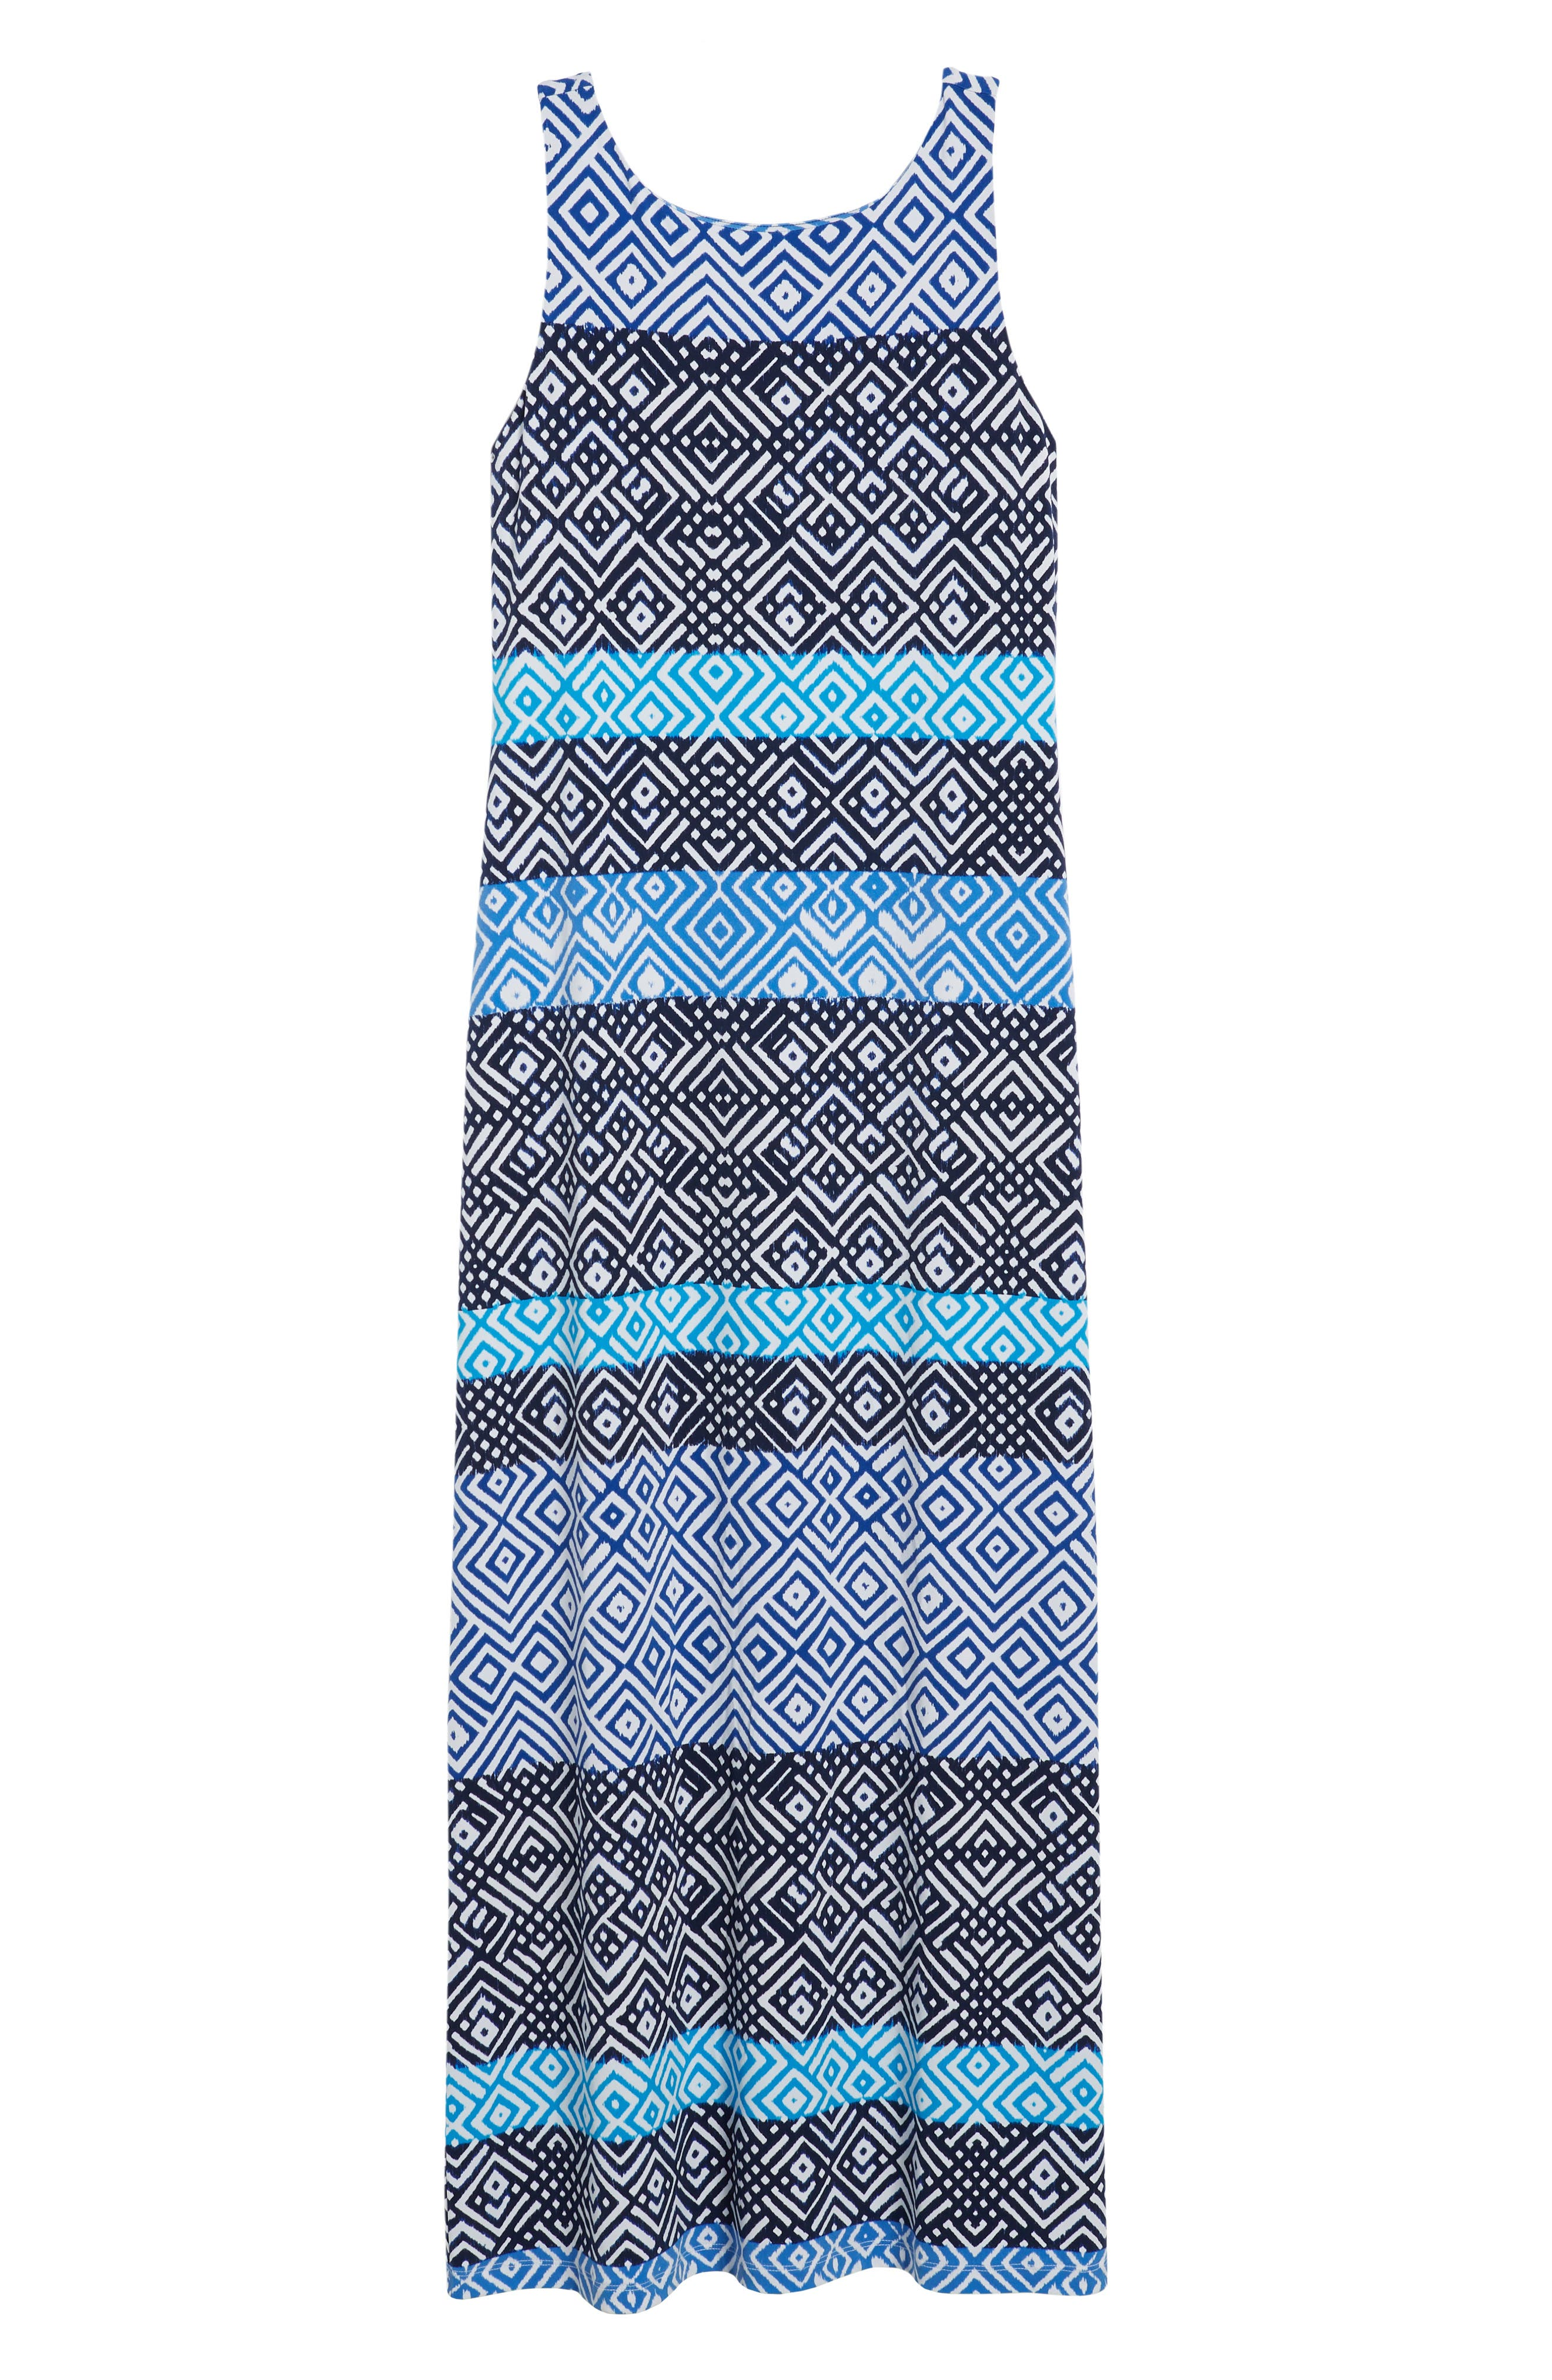 TOMMY BAHAMA,                             Mayan Maze Maxi Dress,                             Alternate thumbnail 7, color,                             OCEAN DEEP